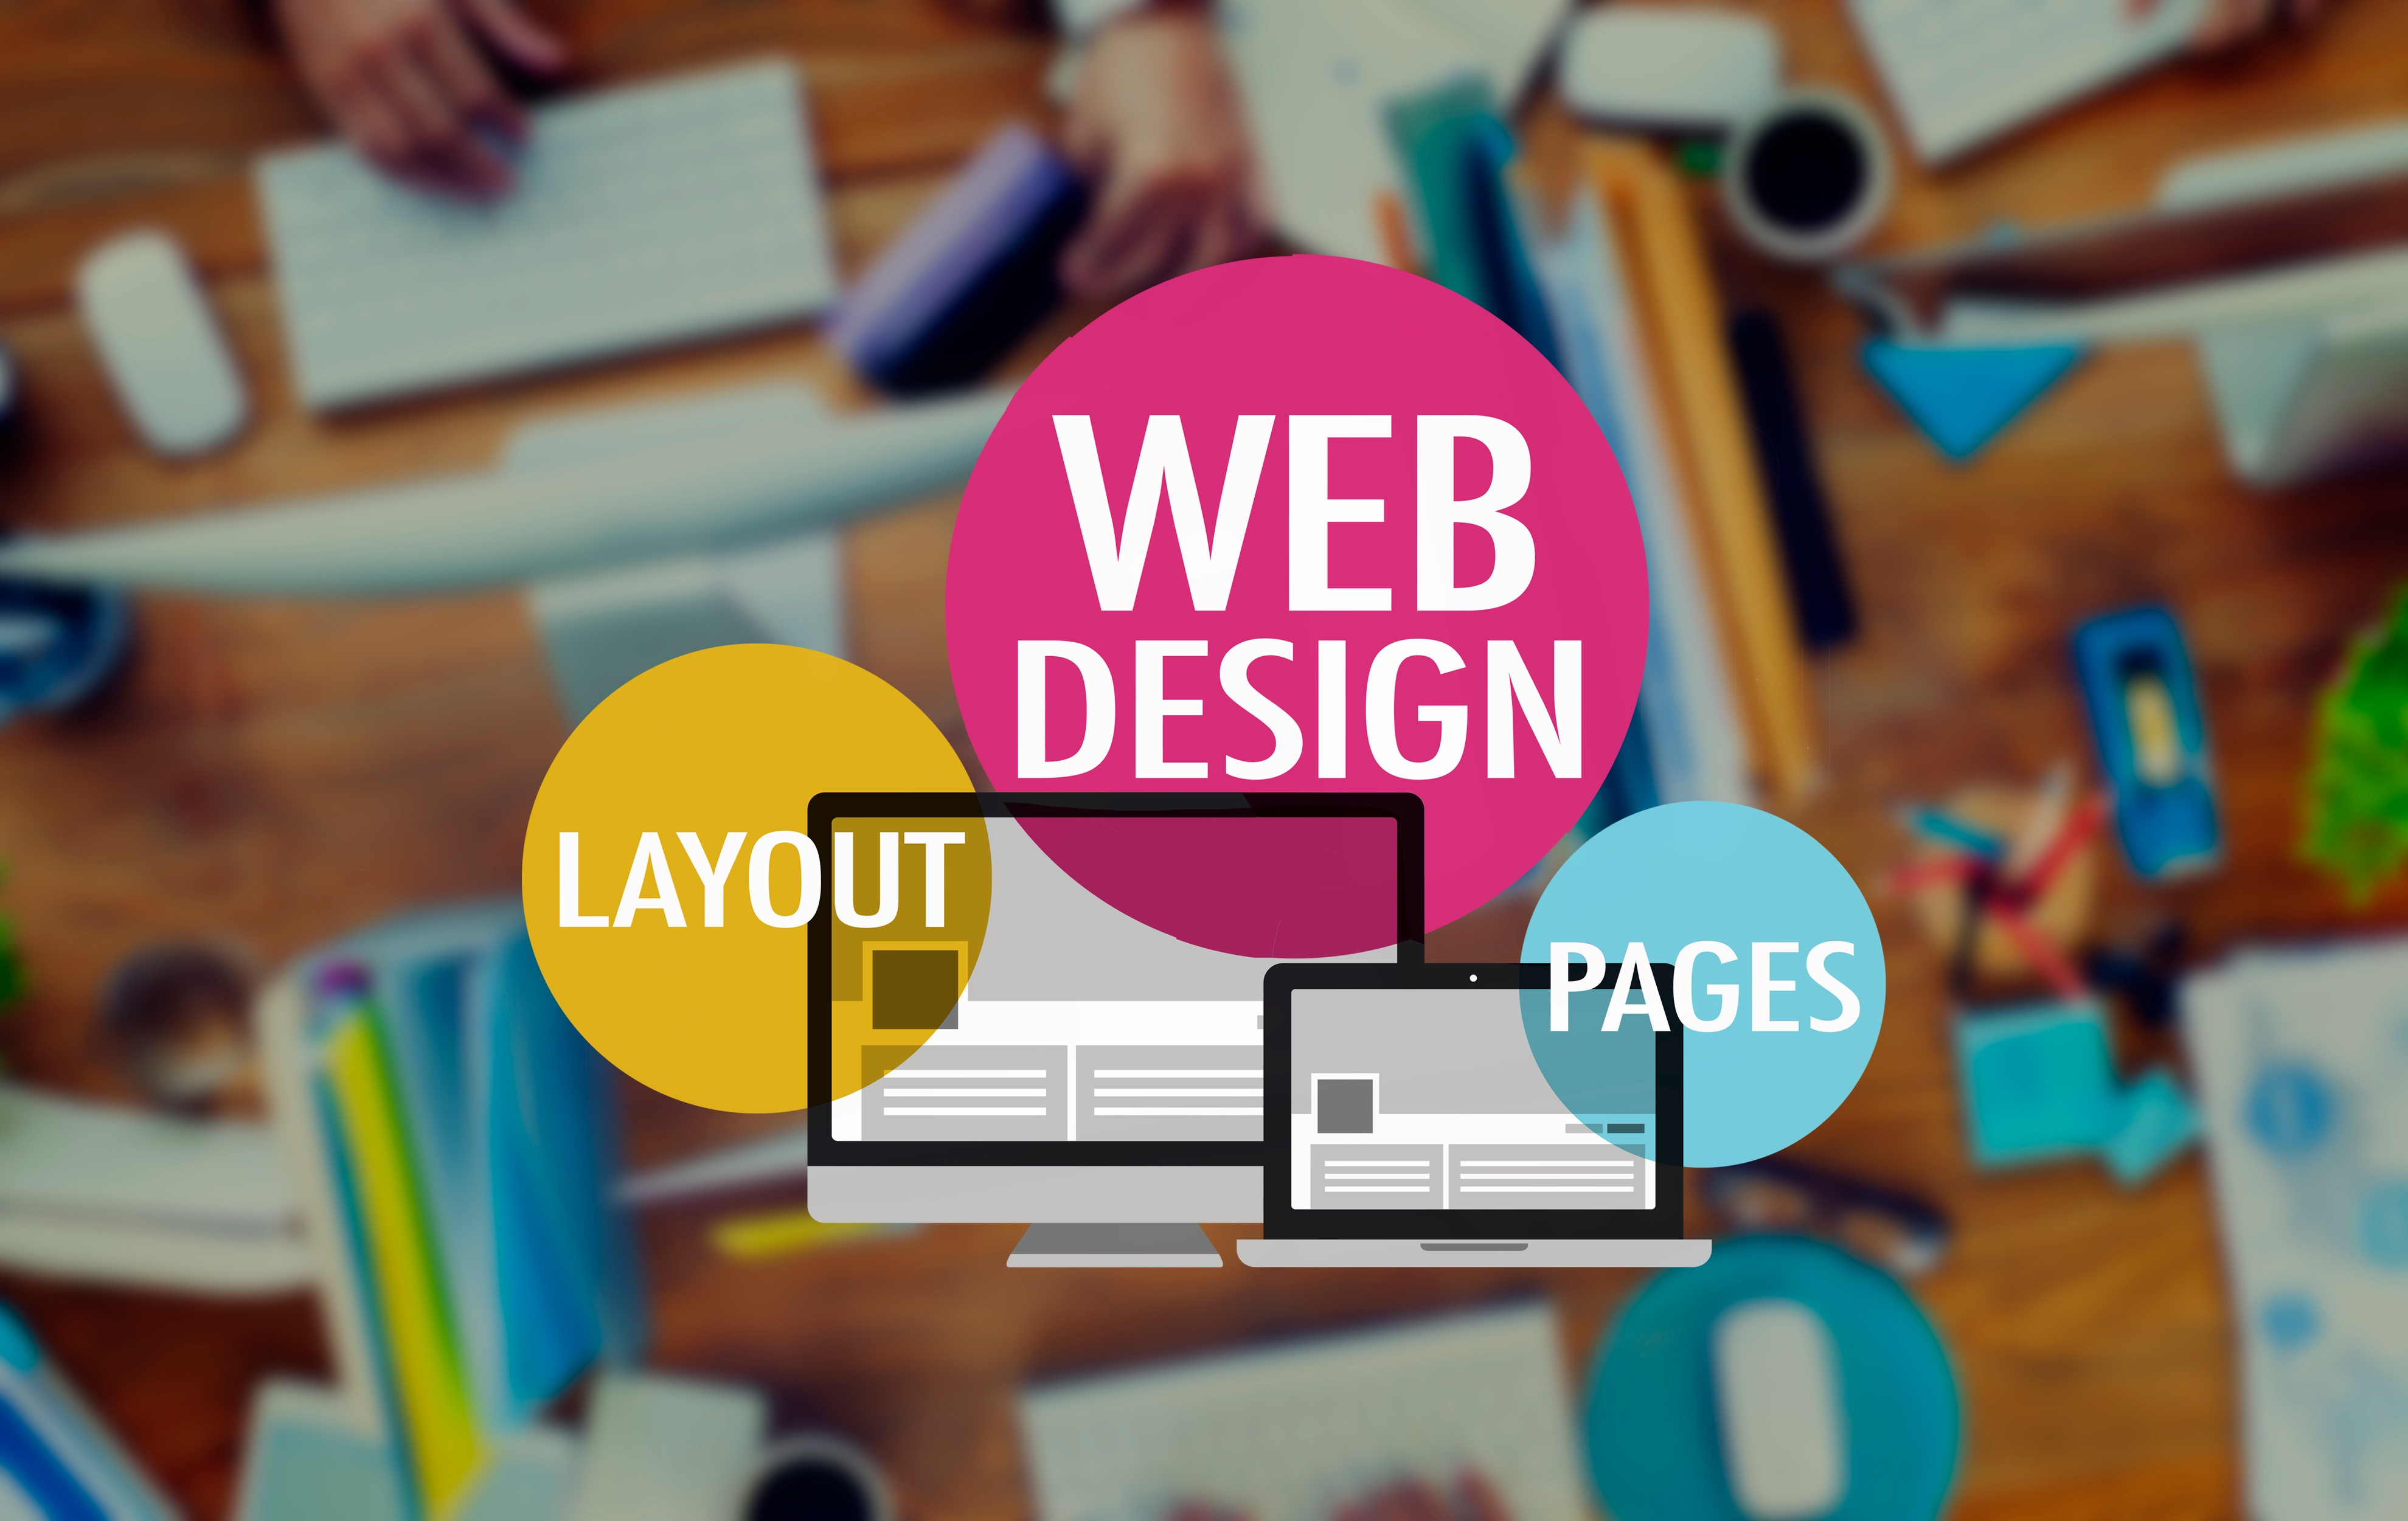 city web design-493595088.jpg